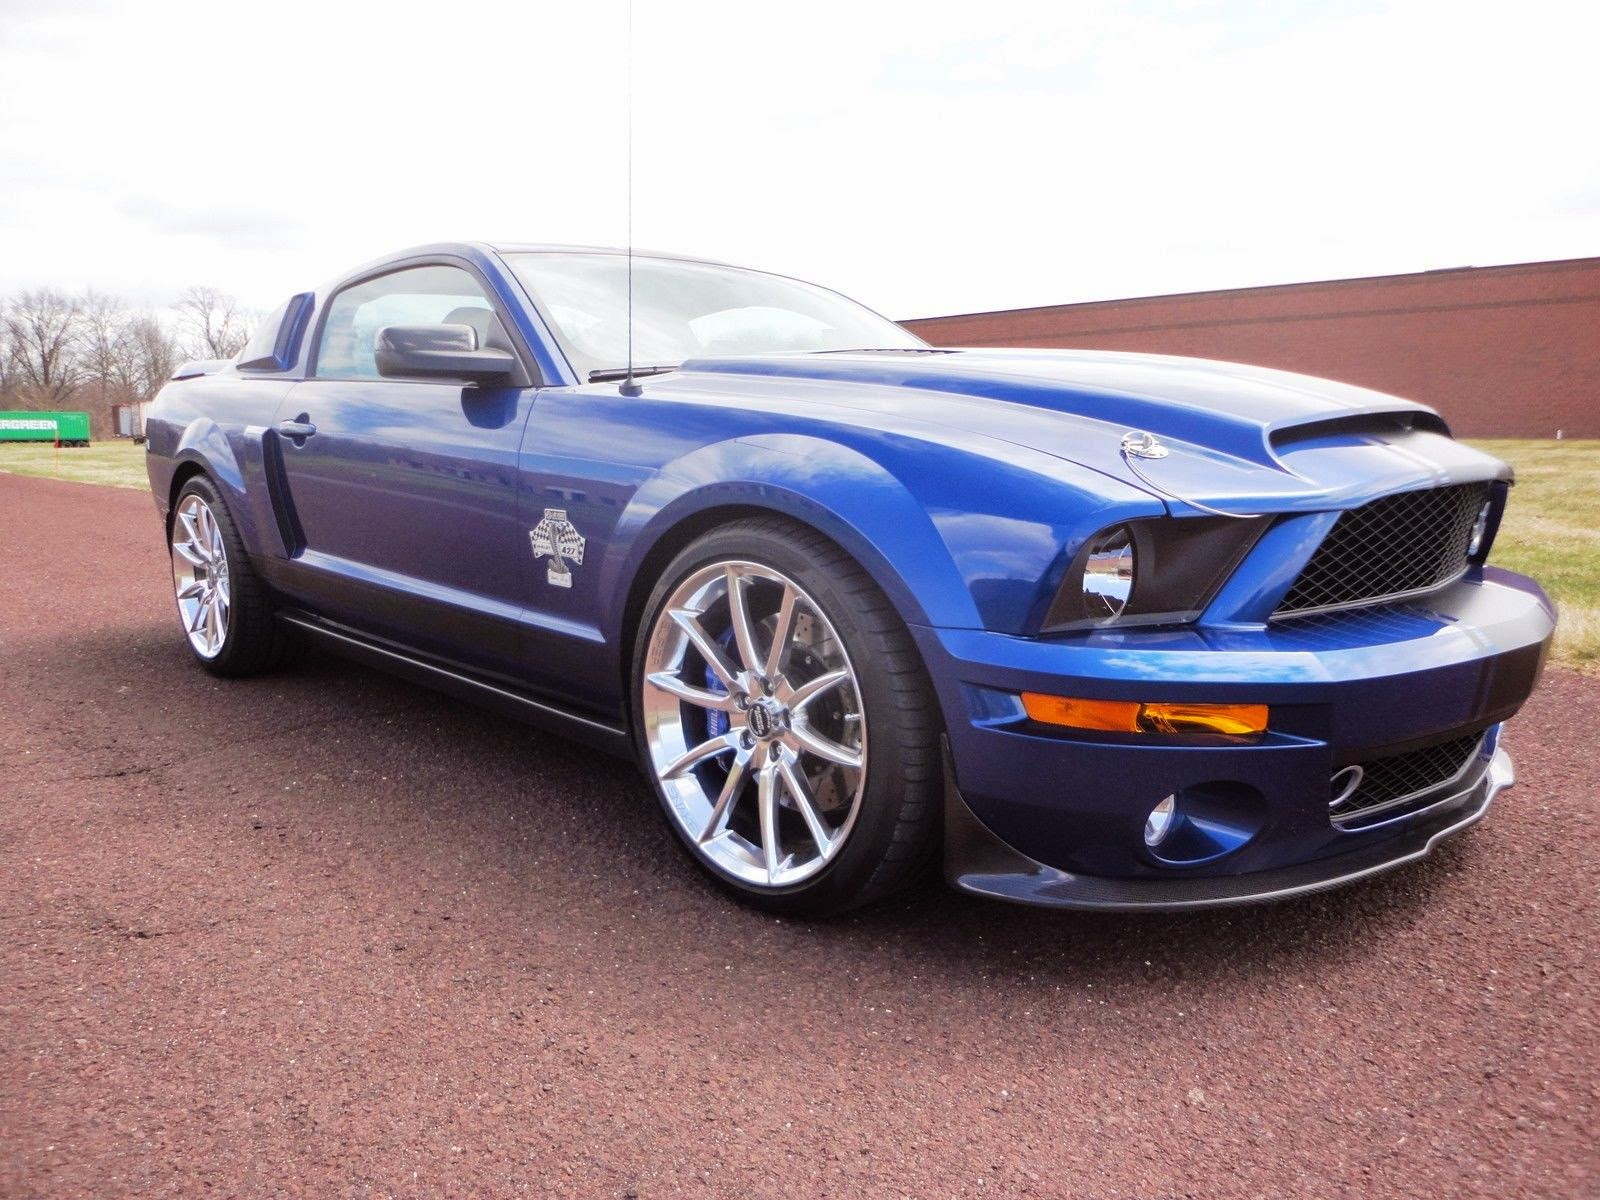 ford mustang shelby gt500 super snake 725hp for sale american muscle cars. Black Bedroom Furniture Sets. Home Design Ideas